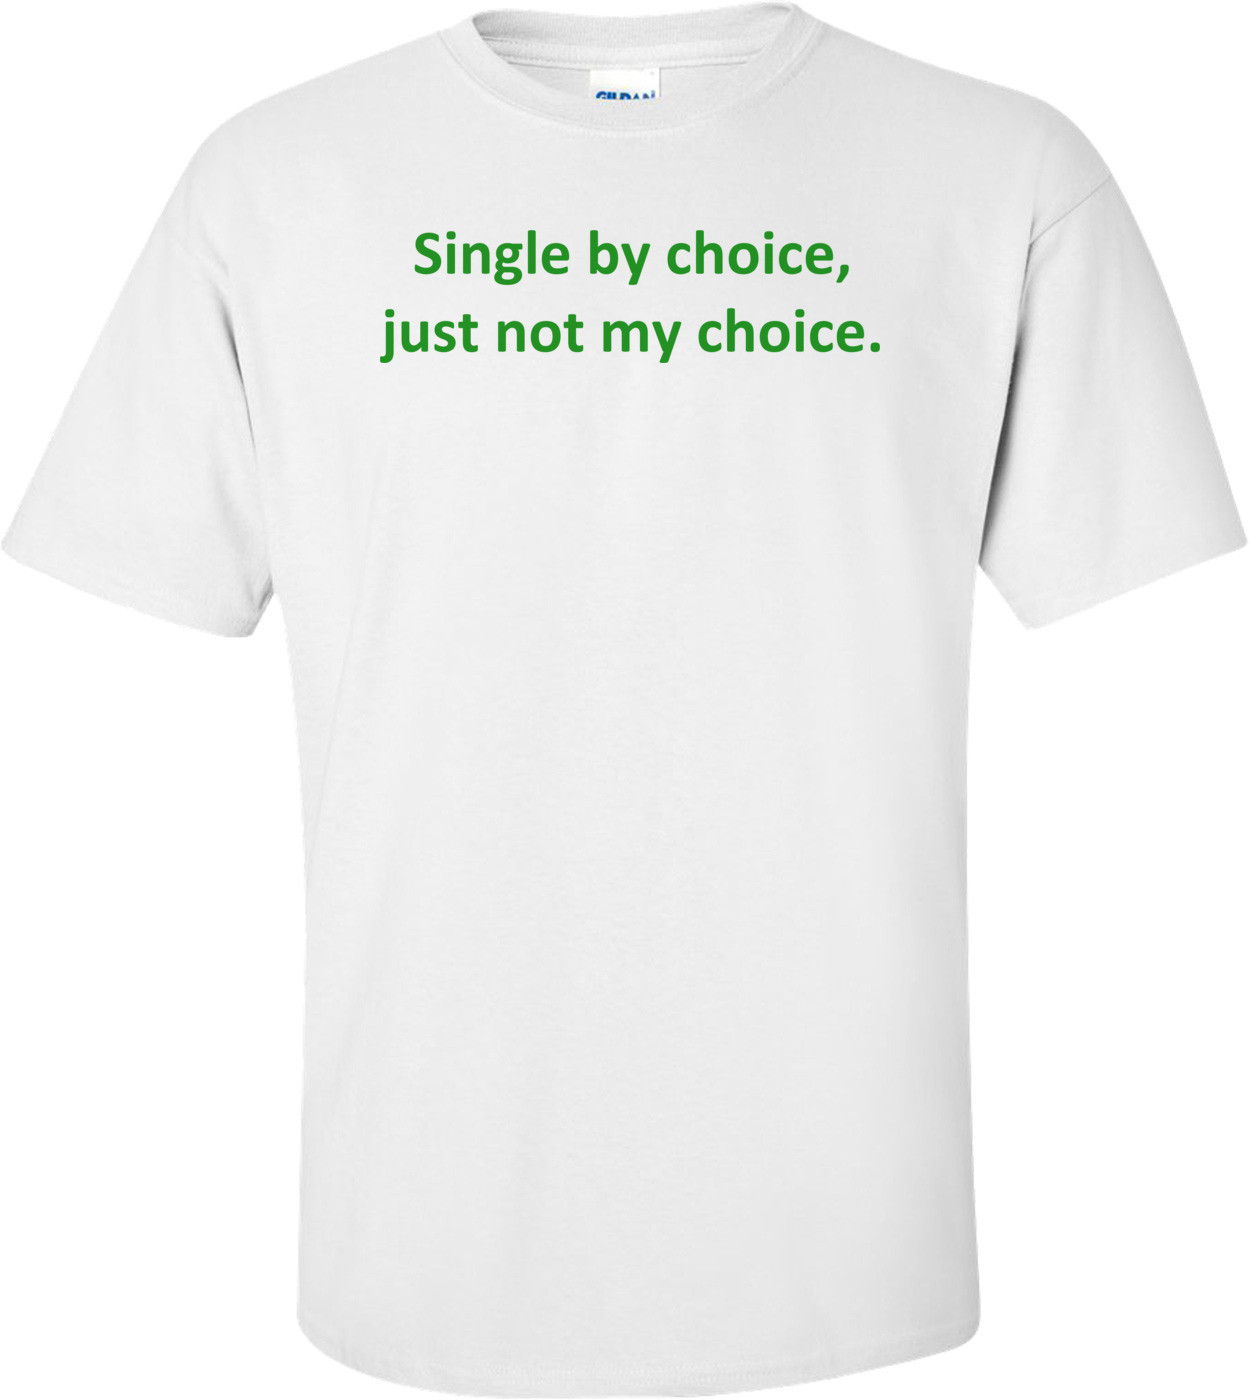 Single by choice, just not my choice. Shirt